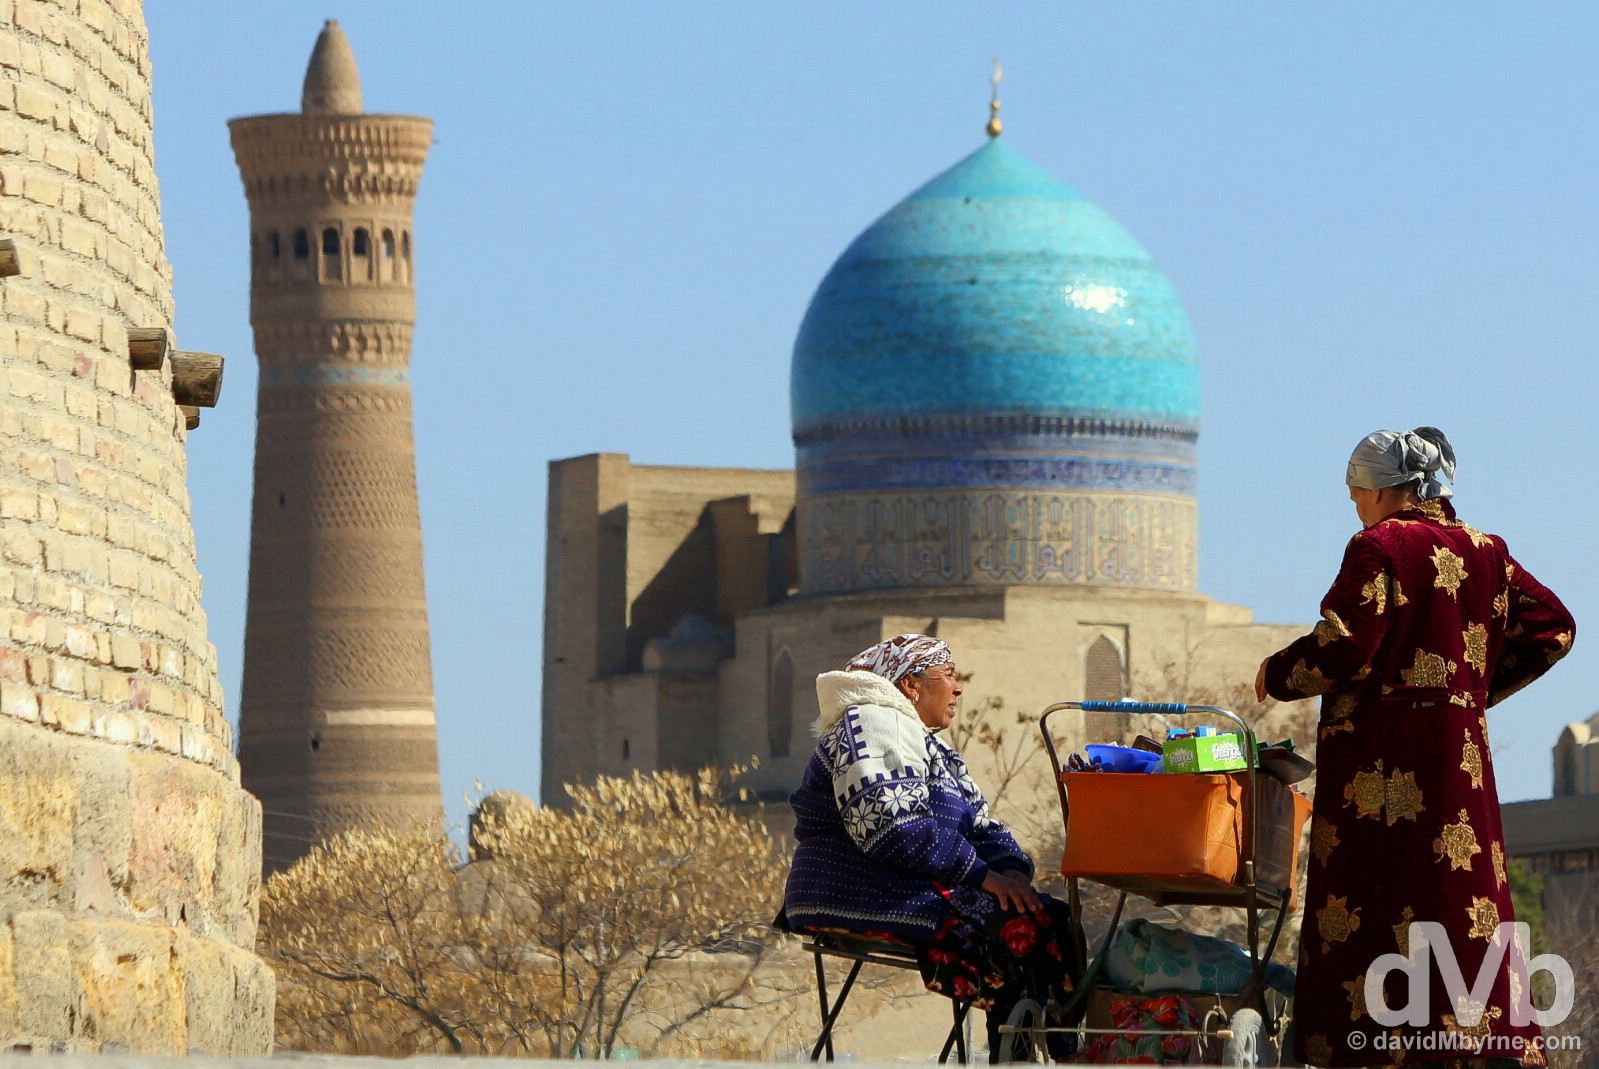 Conducting business by the walls of the Ark in the Registan in view the Kalon Mosque & Minaret. Bukhara, Uzbekistan. March 12, 2015.